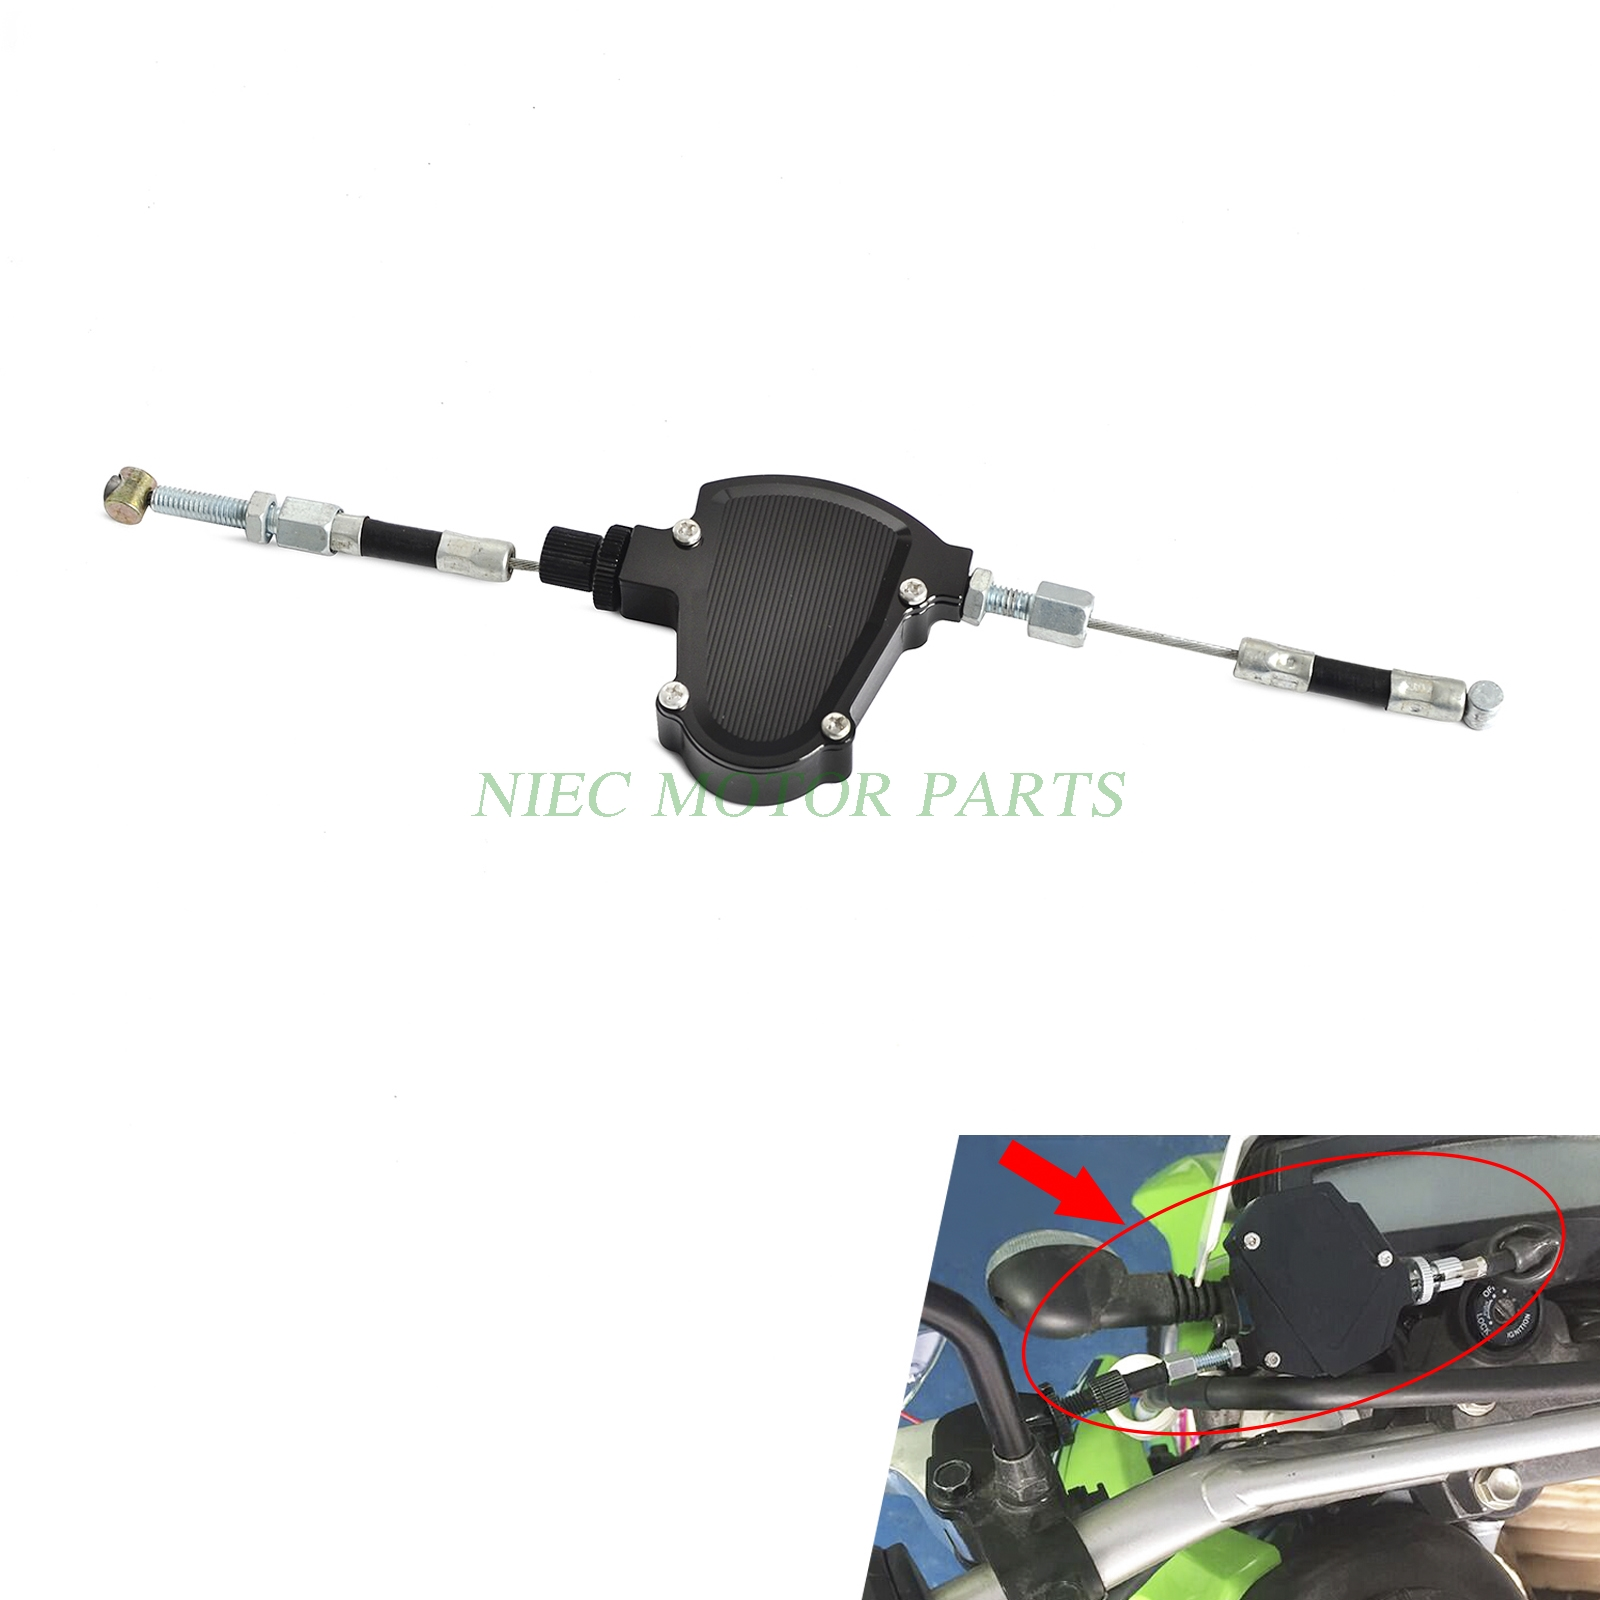 Image 2 - CNC Universal Stunt Clutch Easy Pull Cable System Motorcycles Dirt Bike For Honda Yamaha Suzuki Kawasaki Ducati Triumph-in Levers, Ropes & Cables from Automobiles & Motorcycles